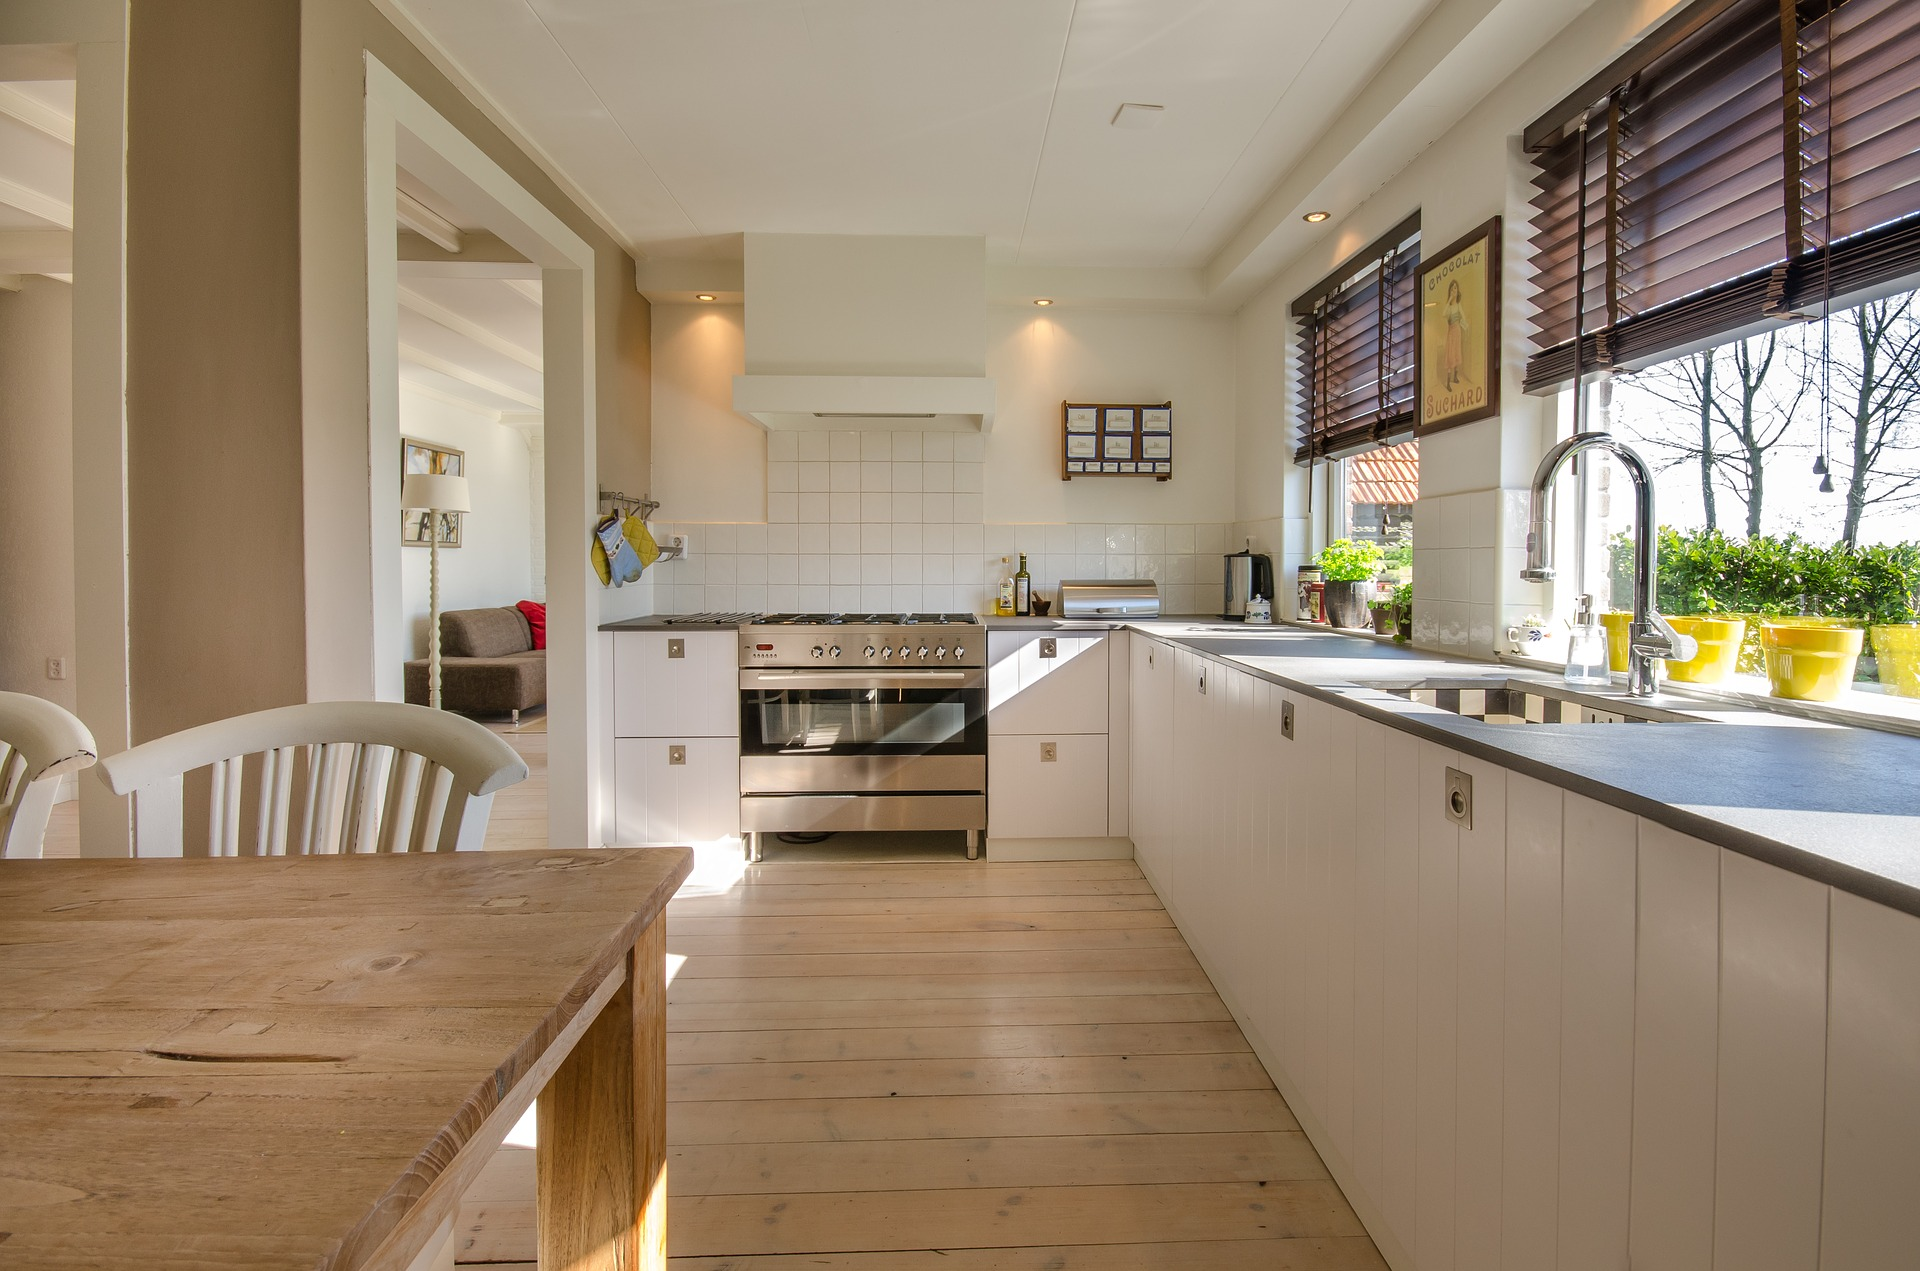 Make The Most Of Your Tulsa, OK Kitchen Space! 7 Time-tested Organizing Tips